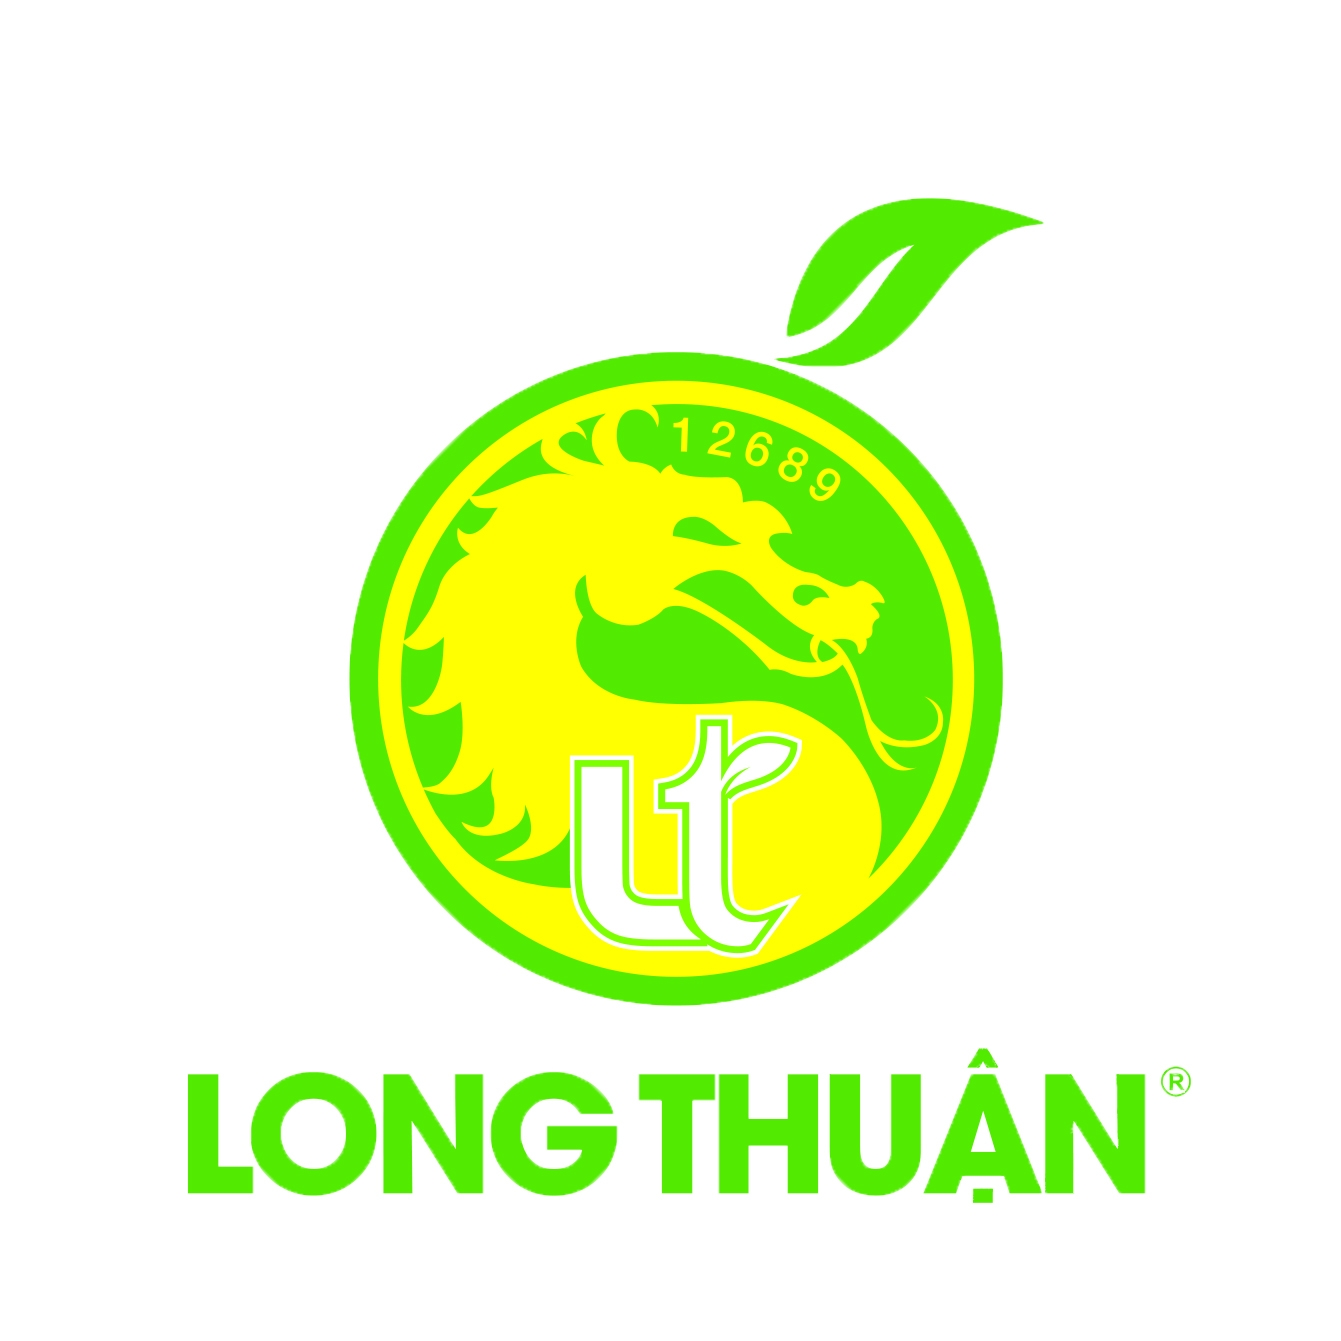 LONG THUAN PRIVATE ENTERPRISE